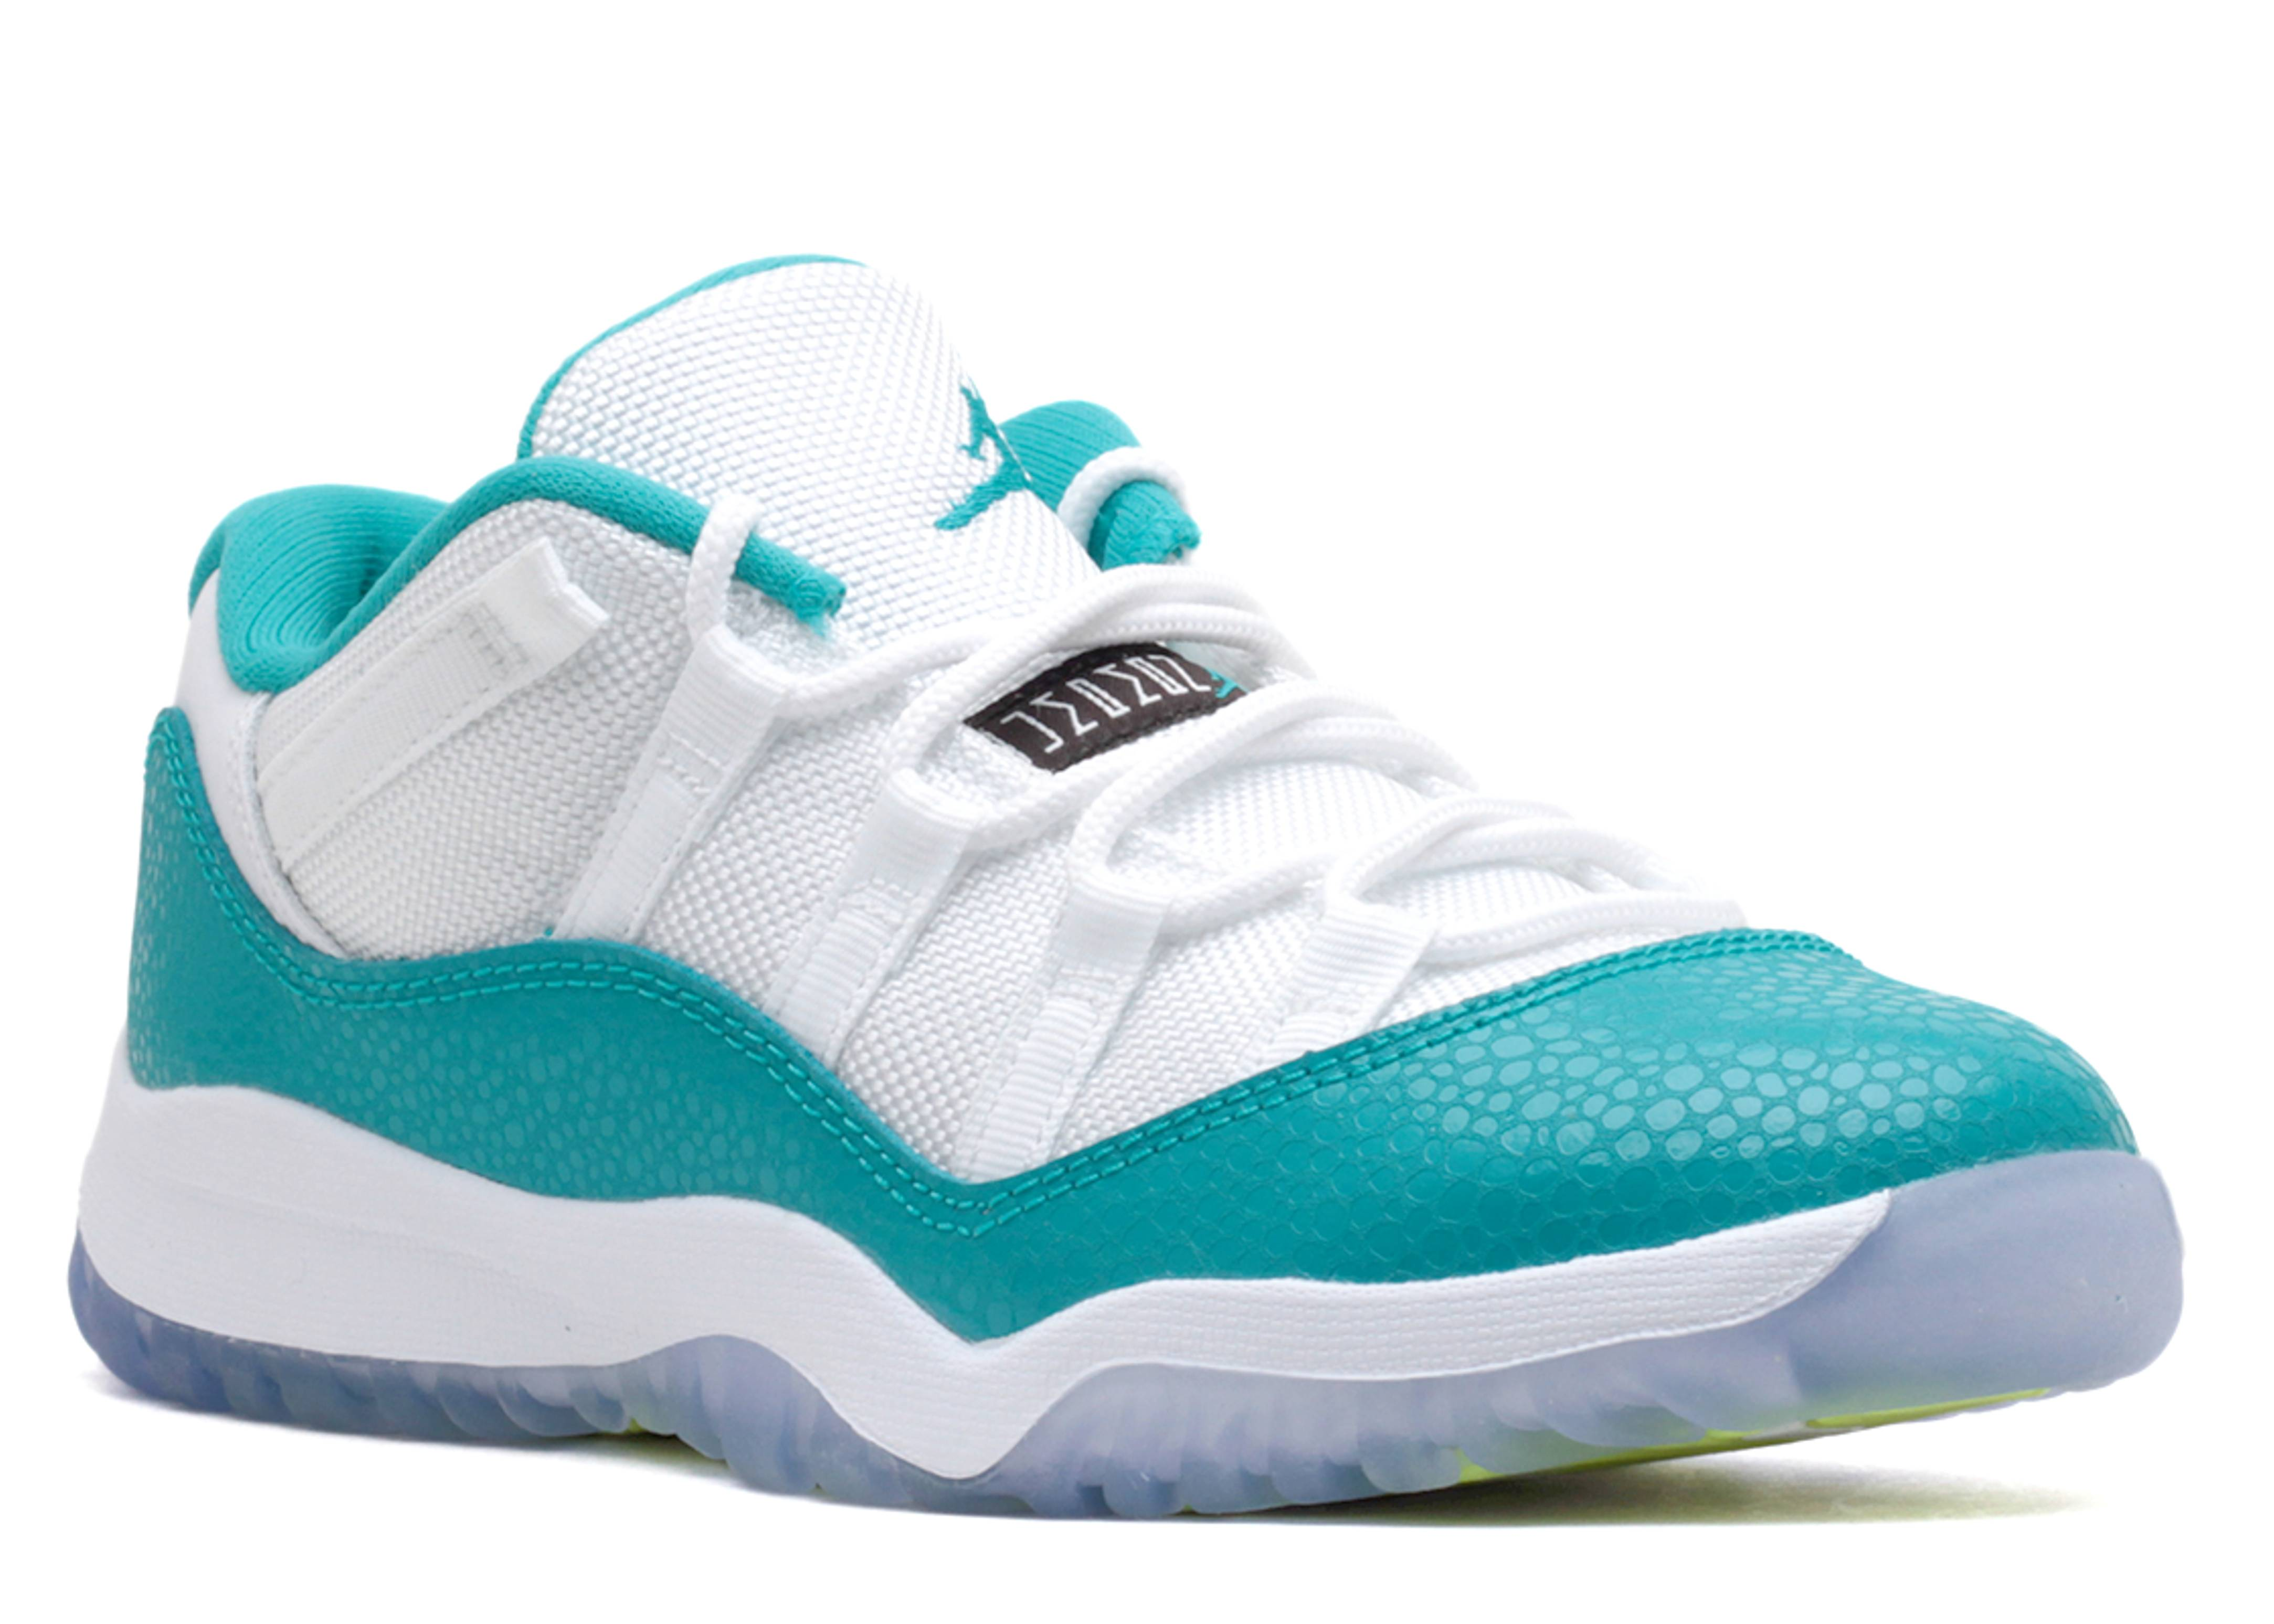 air jordan 11 aqua safari